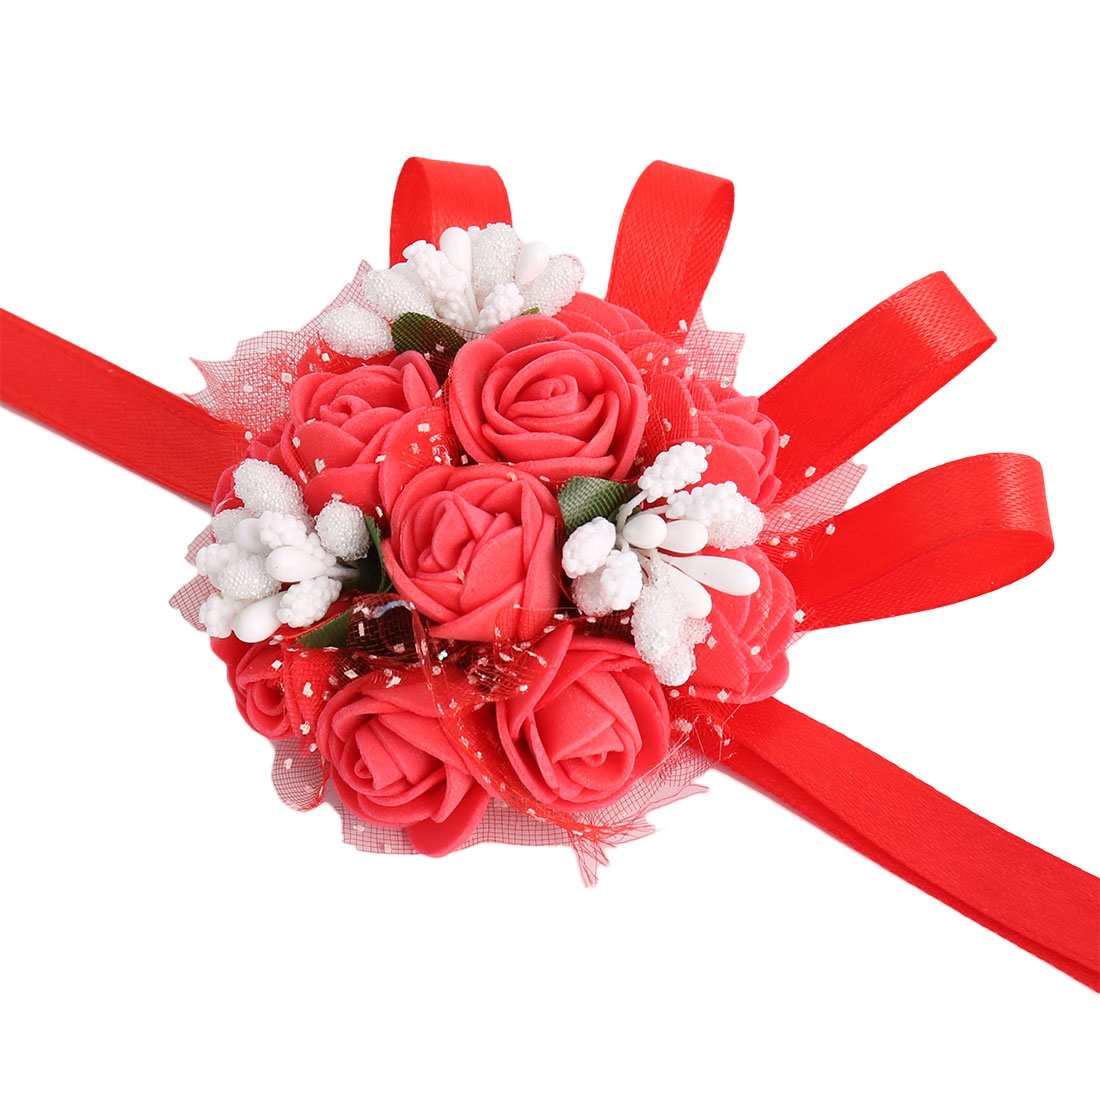 Wedding Party Foam Bridesmaid Dancer Hand Corsage Decor Artificial Wrist Flower Red